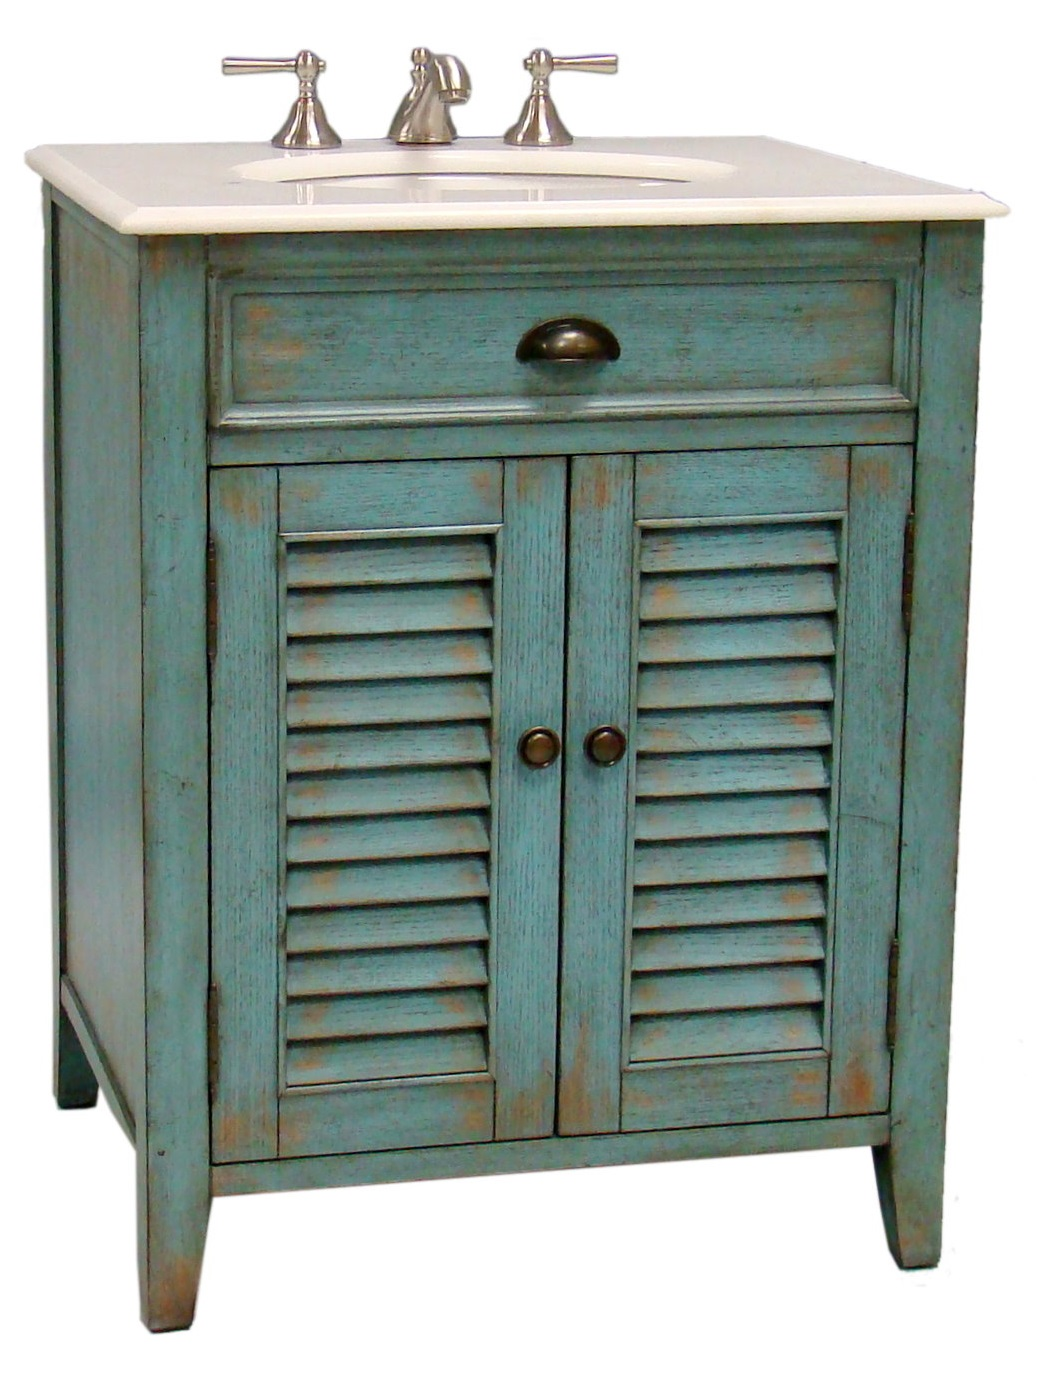 26 Inch Bathroom Vanity Cottage Beach Style Distressed Blue Color Wx21 5 Dx34 H Ccf28883bu